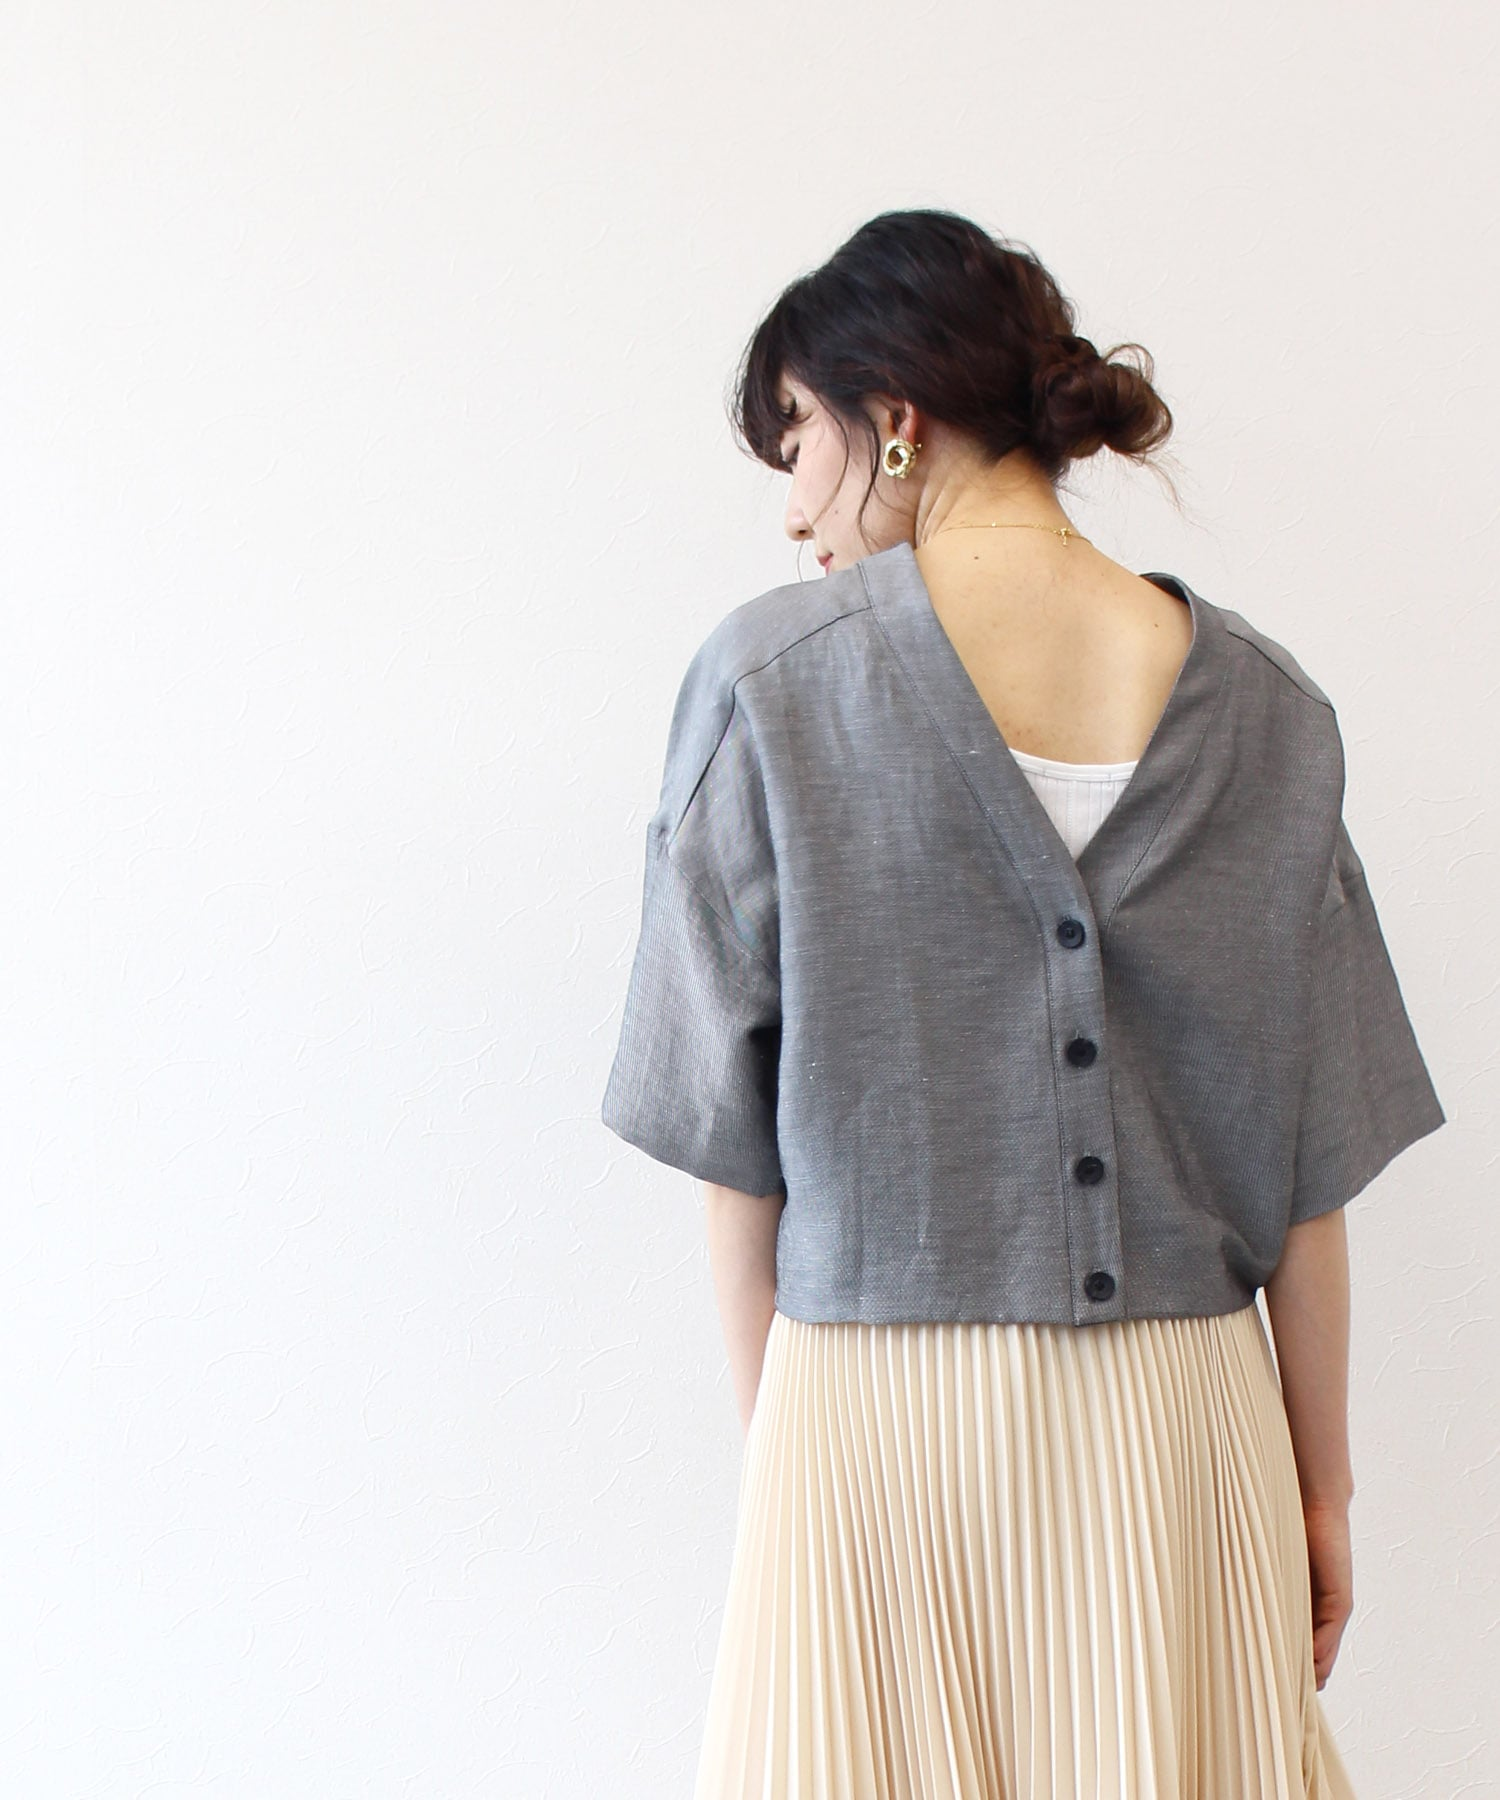 triacetate linen pullover cardigan